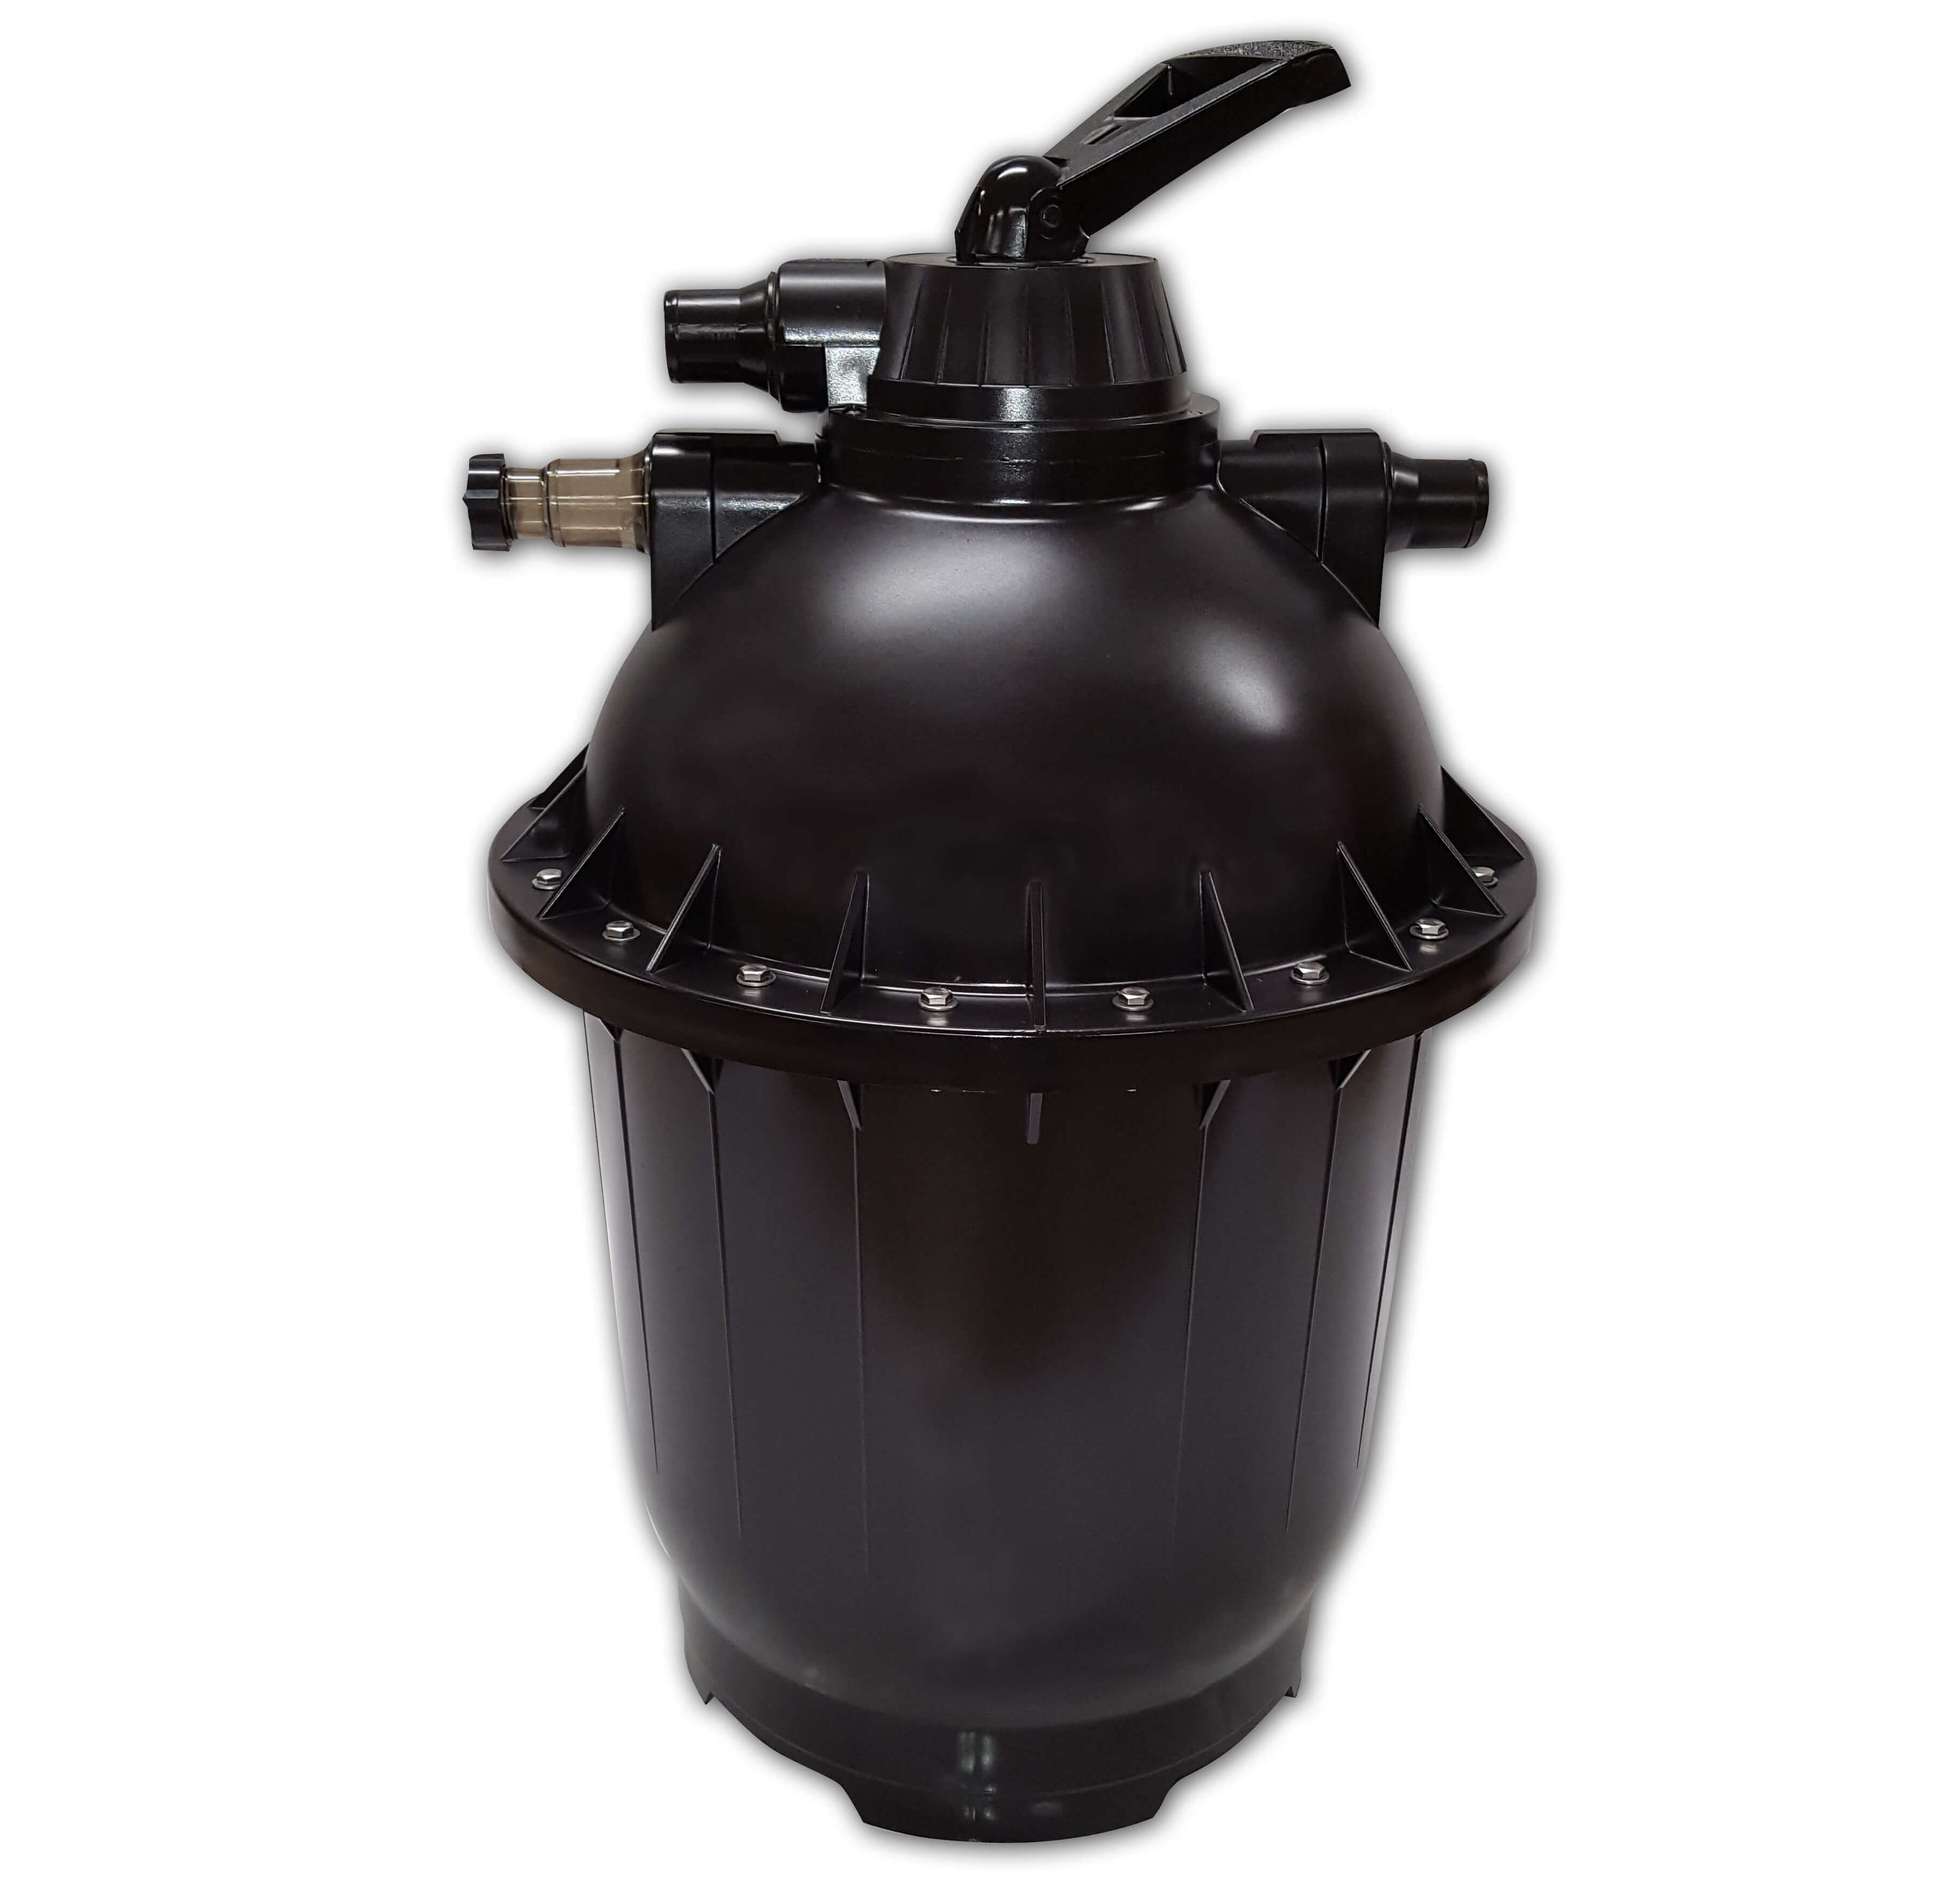 spectra pool filters hydra de pool filters above ground pools rh lomart com